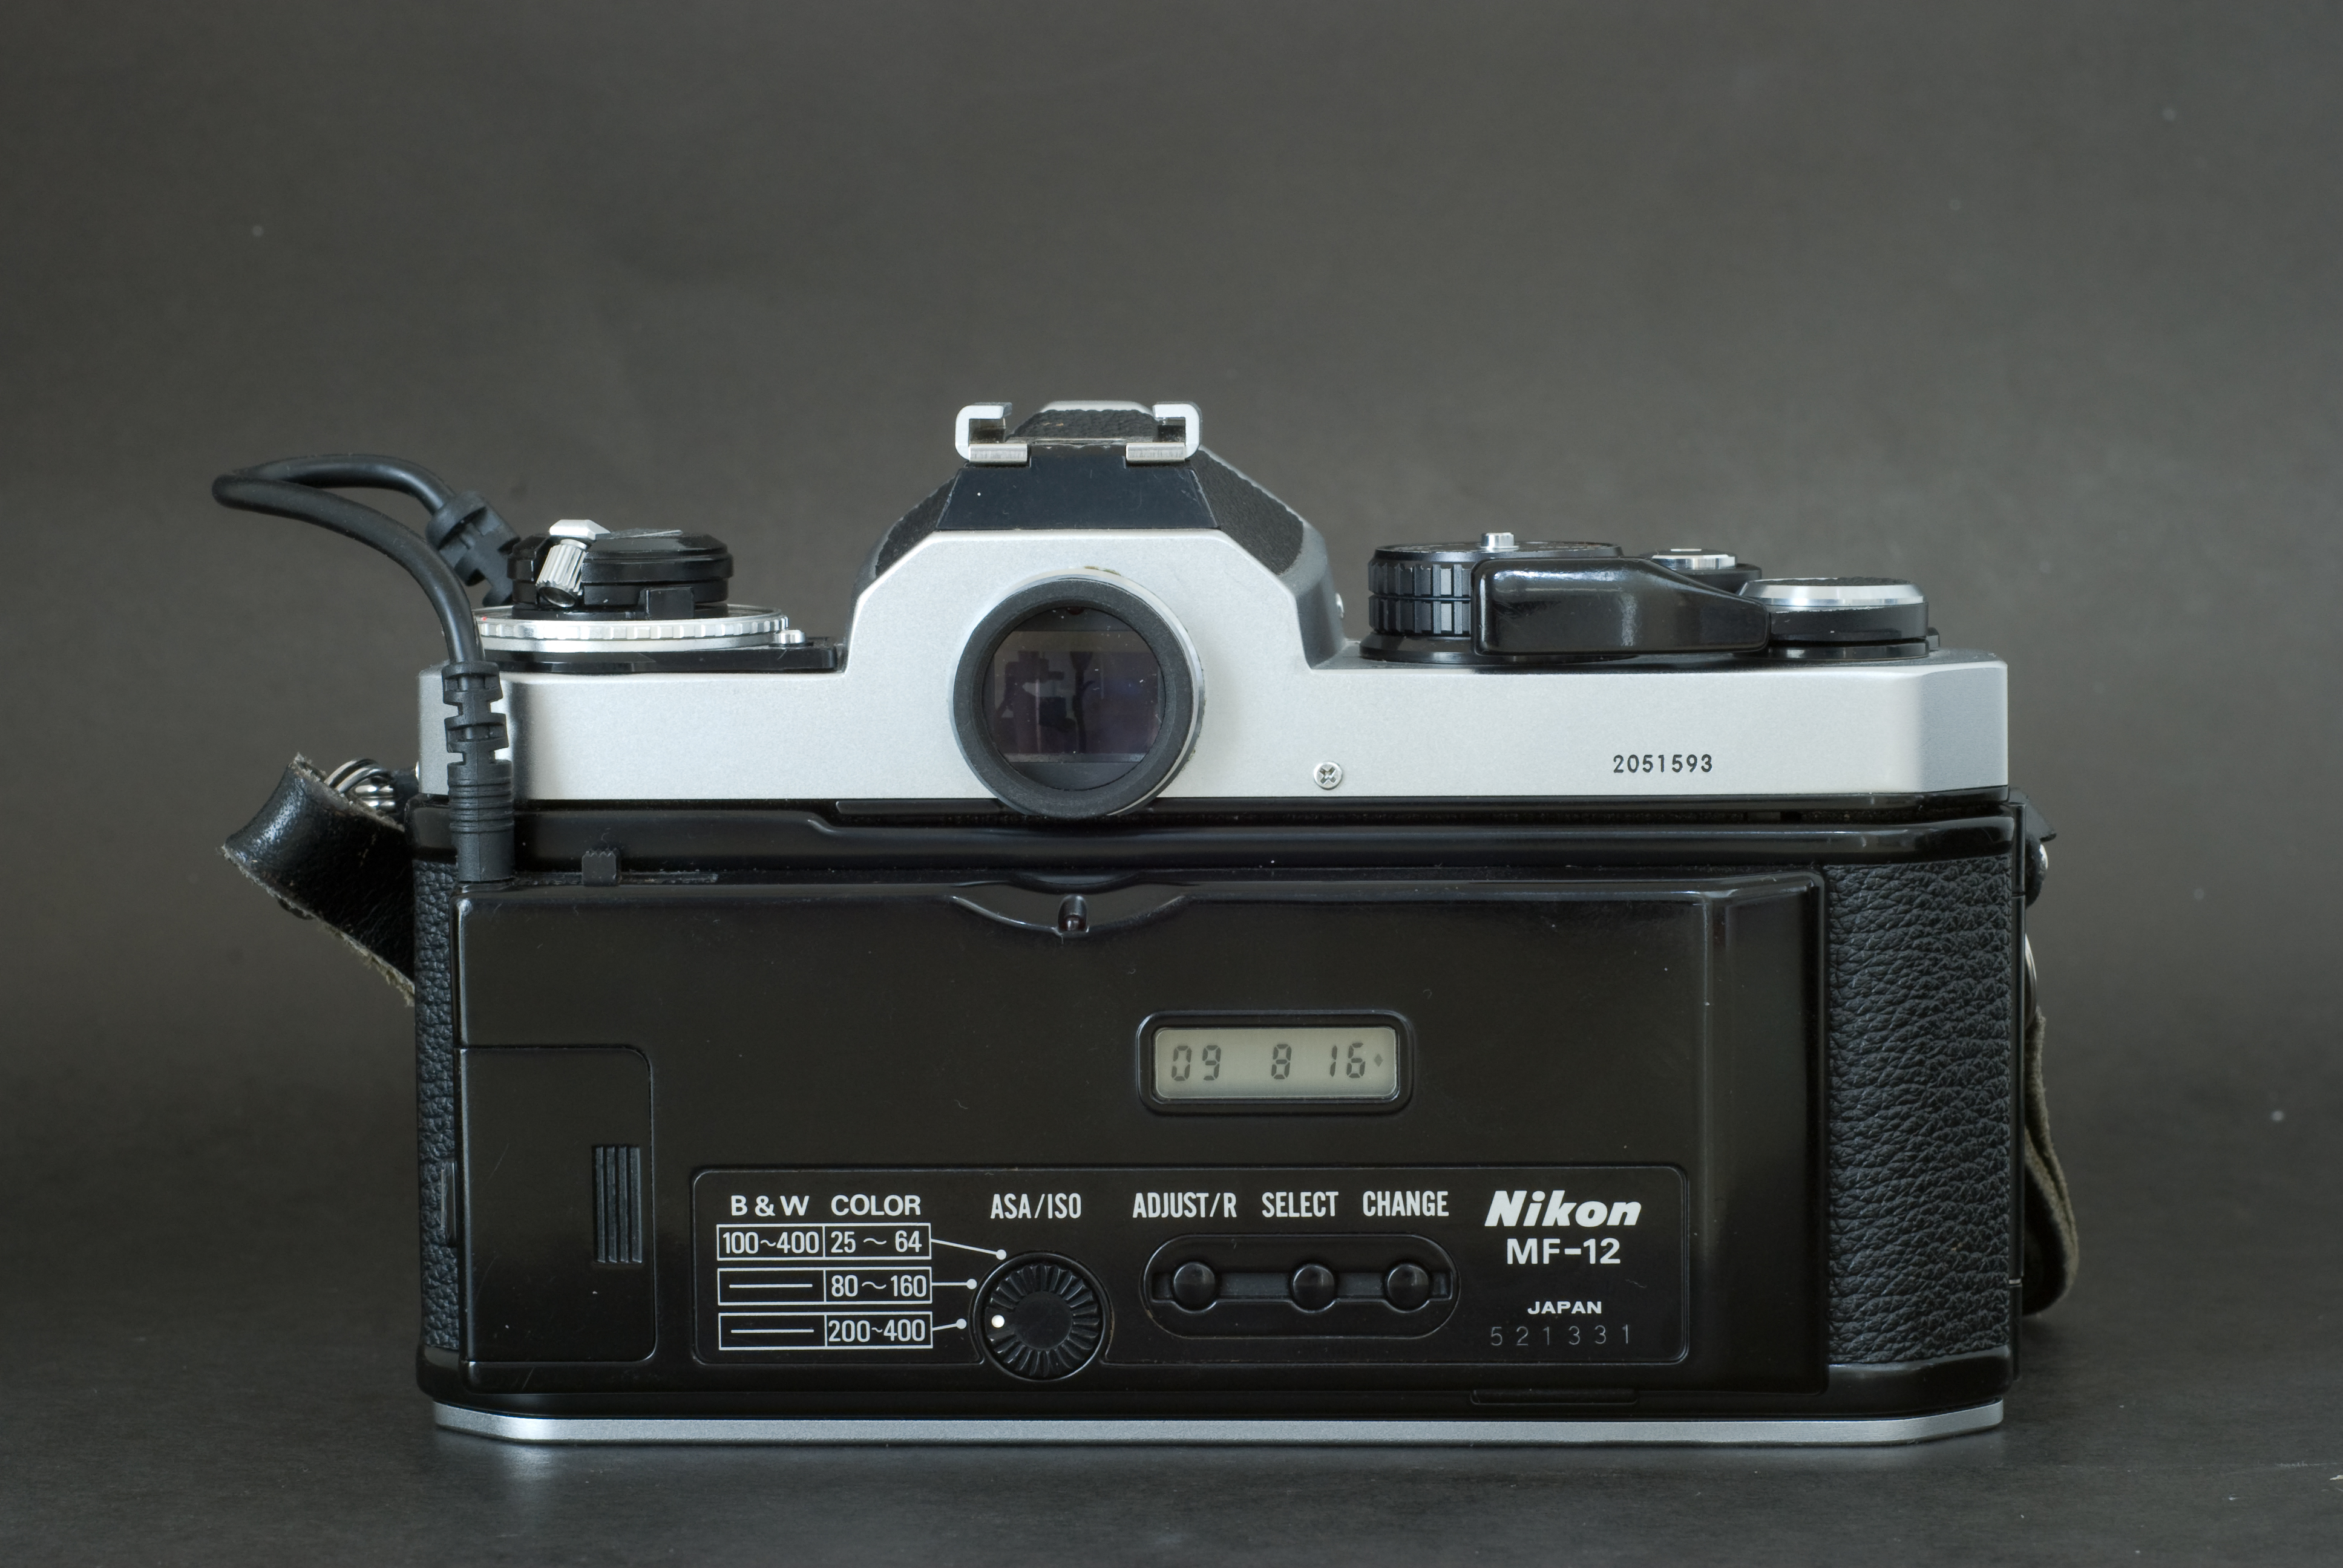 CamerAgX – a new life for old gearCamerAgX's camera reviewsRecent PostsCategoriesWelcomeTop Posts & PagesThe Nikon FE2: one of the very best manual focus SLRsever.Post navigation